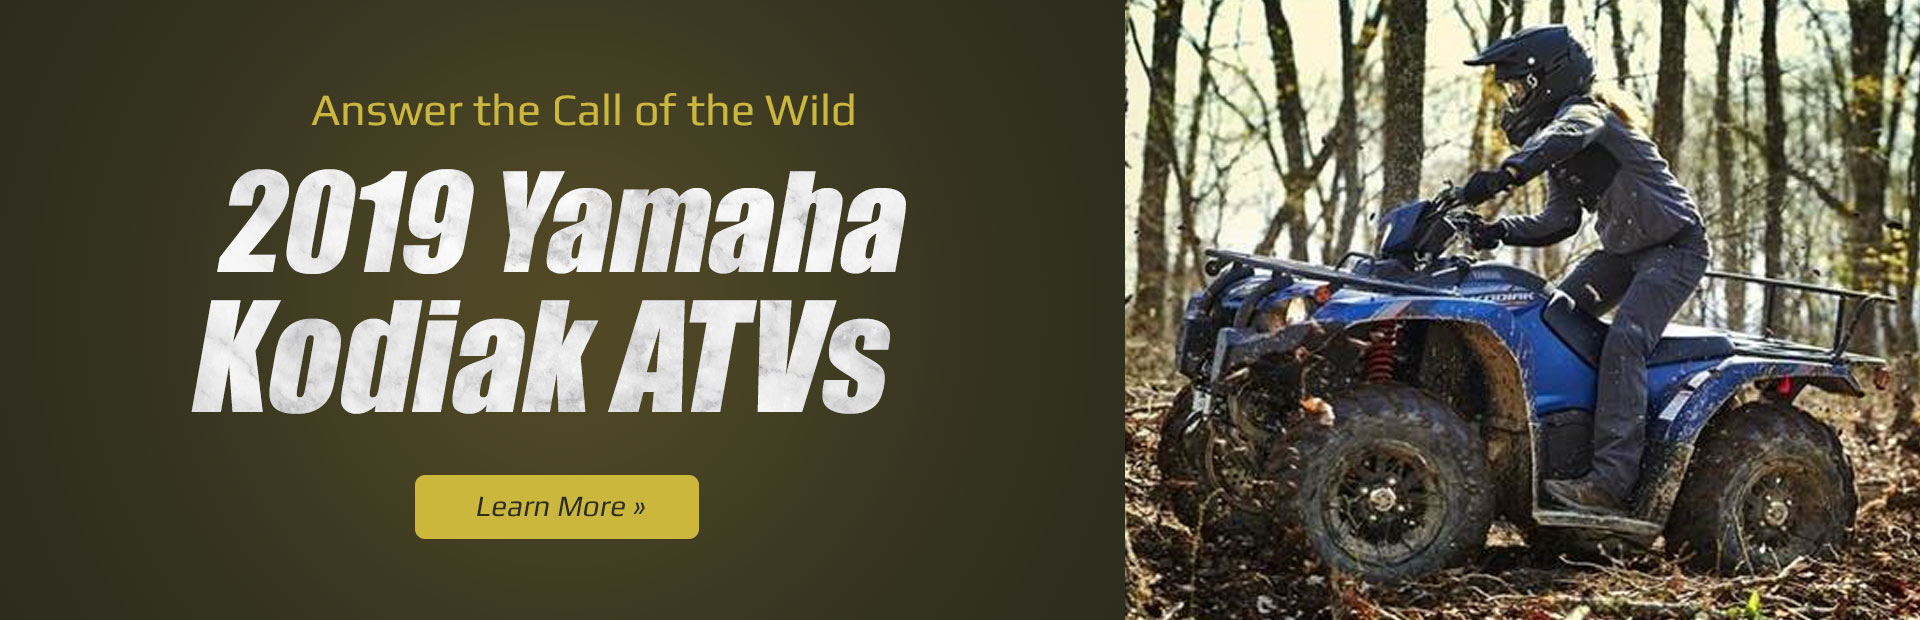 2019 Yamaha Kodiak ATVs: Click here to view the models.